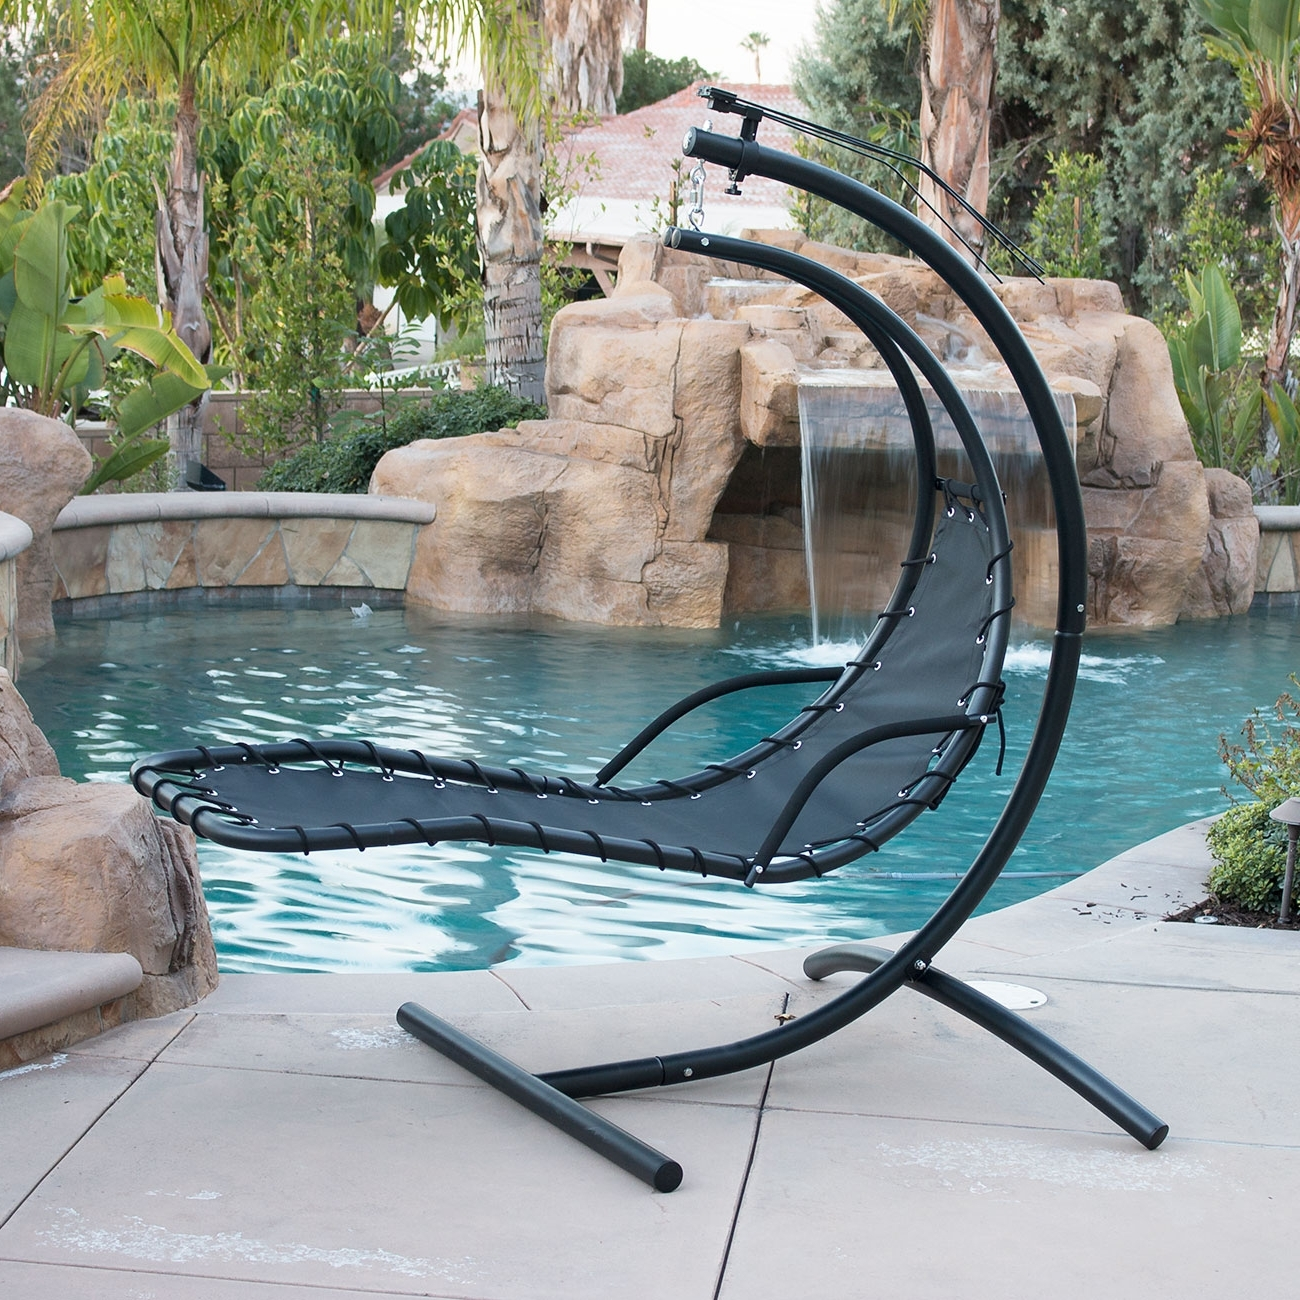 Chaise Lounge Chair With Canopy Pertaining To Well Liked Impressive On Hanging Patio Chair Hanging Chaise Lounge Chair (View 5 of 15)